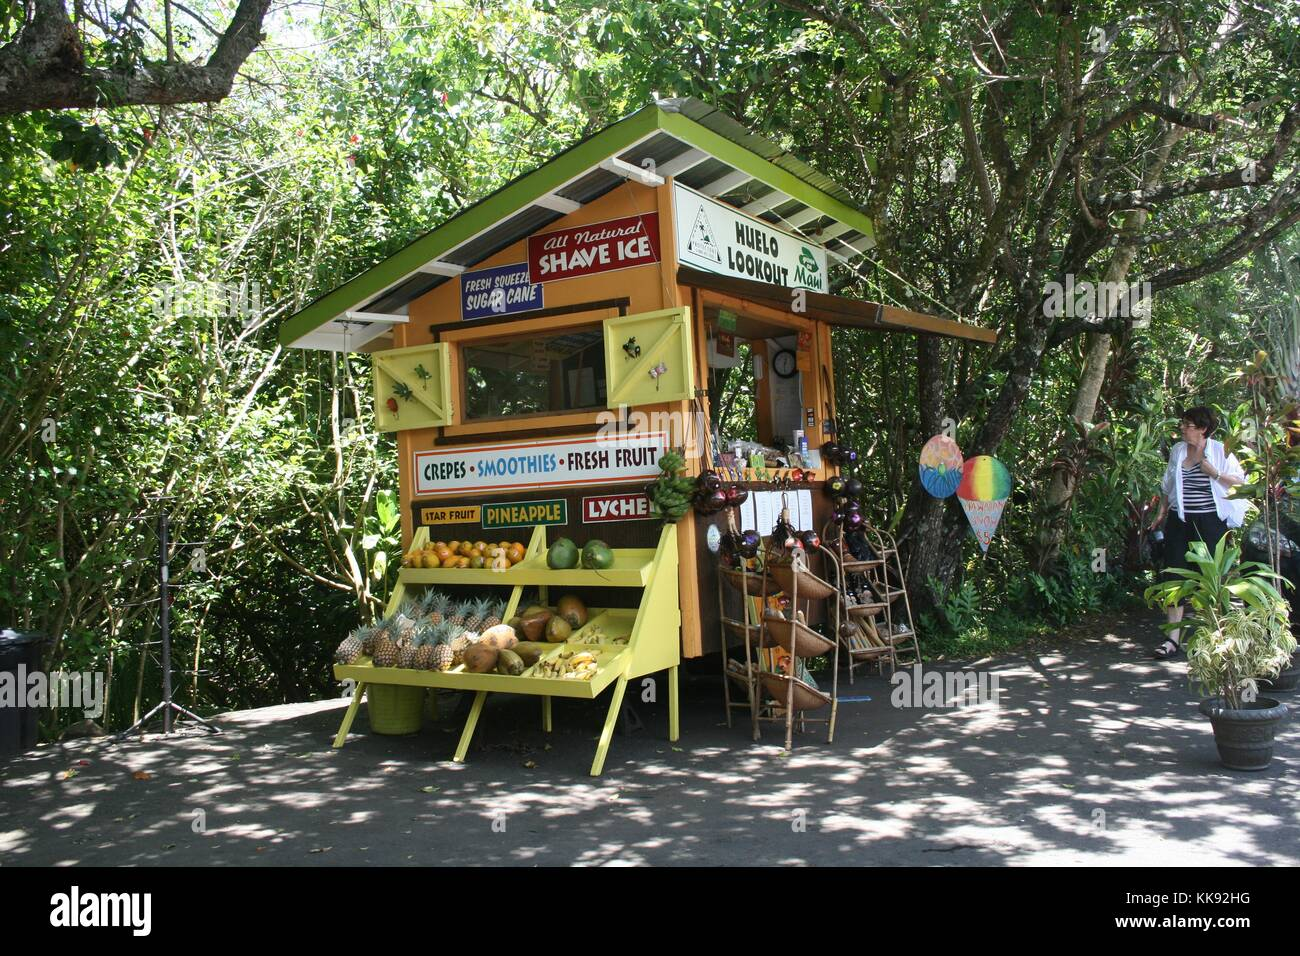 A photograph of the Huelo Lookout Fruit Stand on the road to Hana, fresh produce can be seen displayed for sale Stock Photo